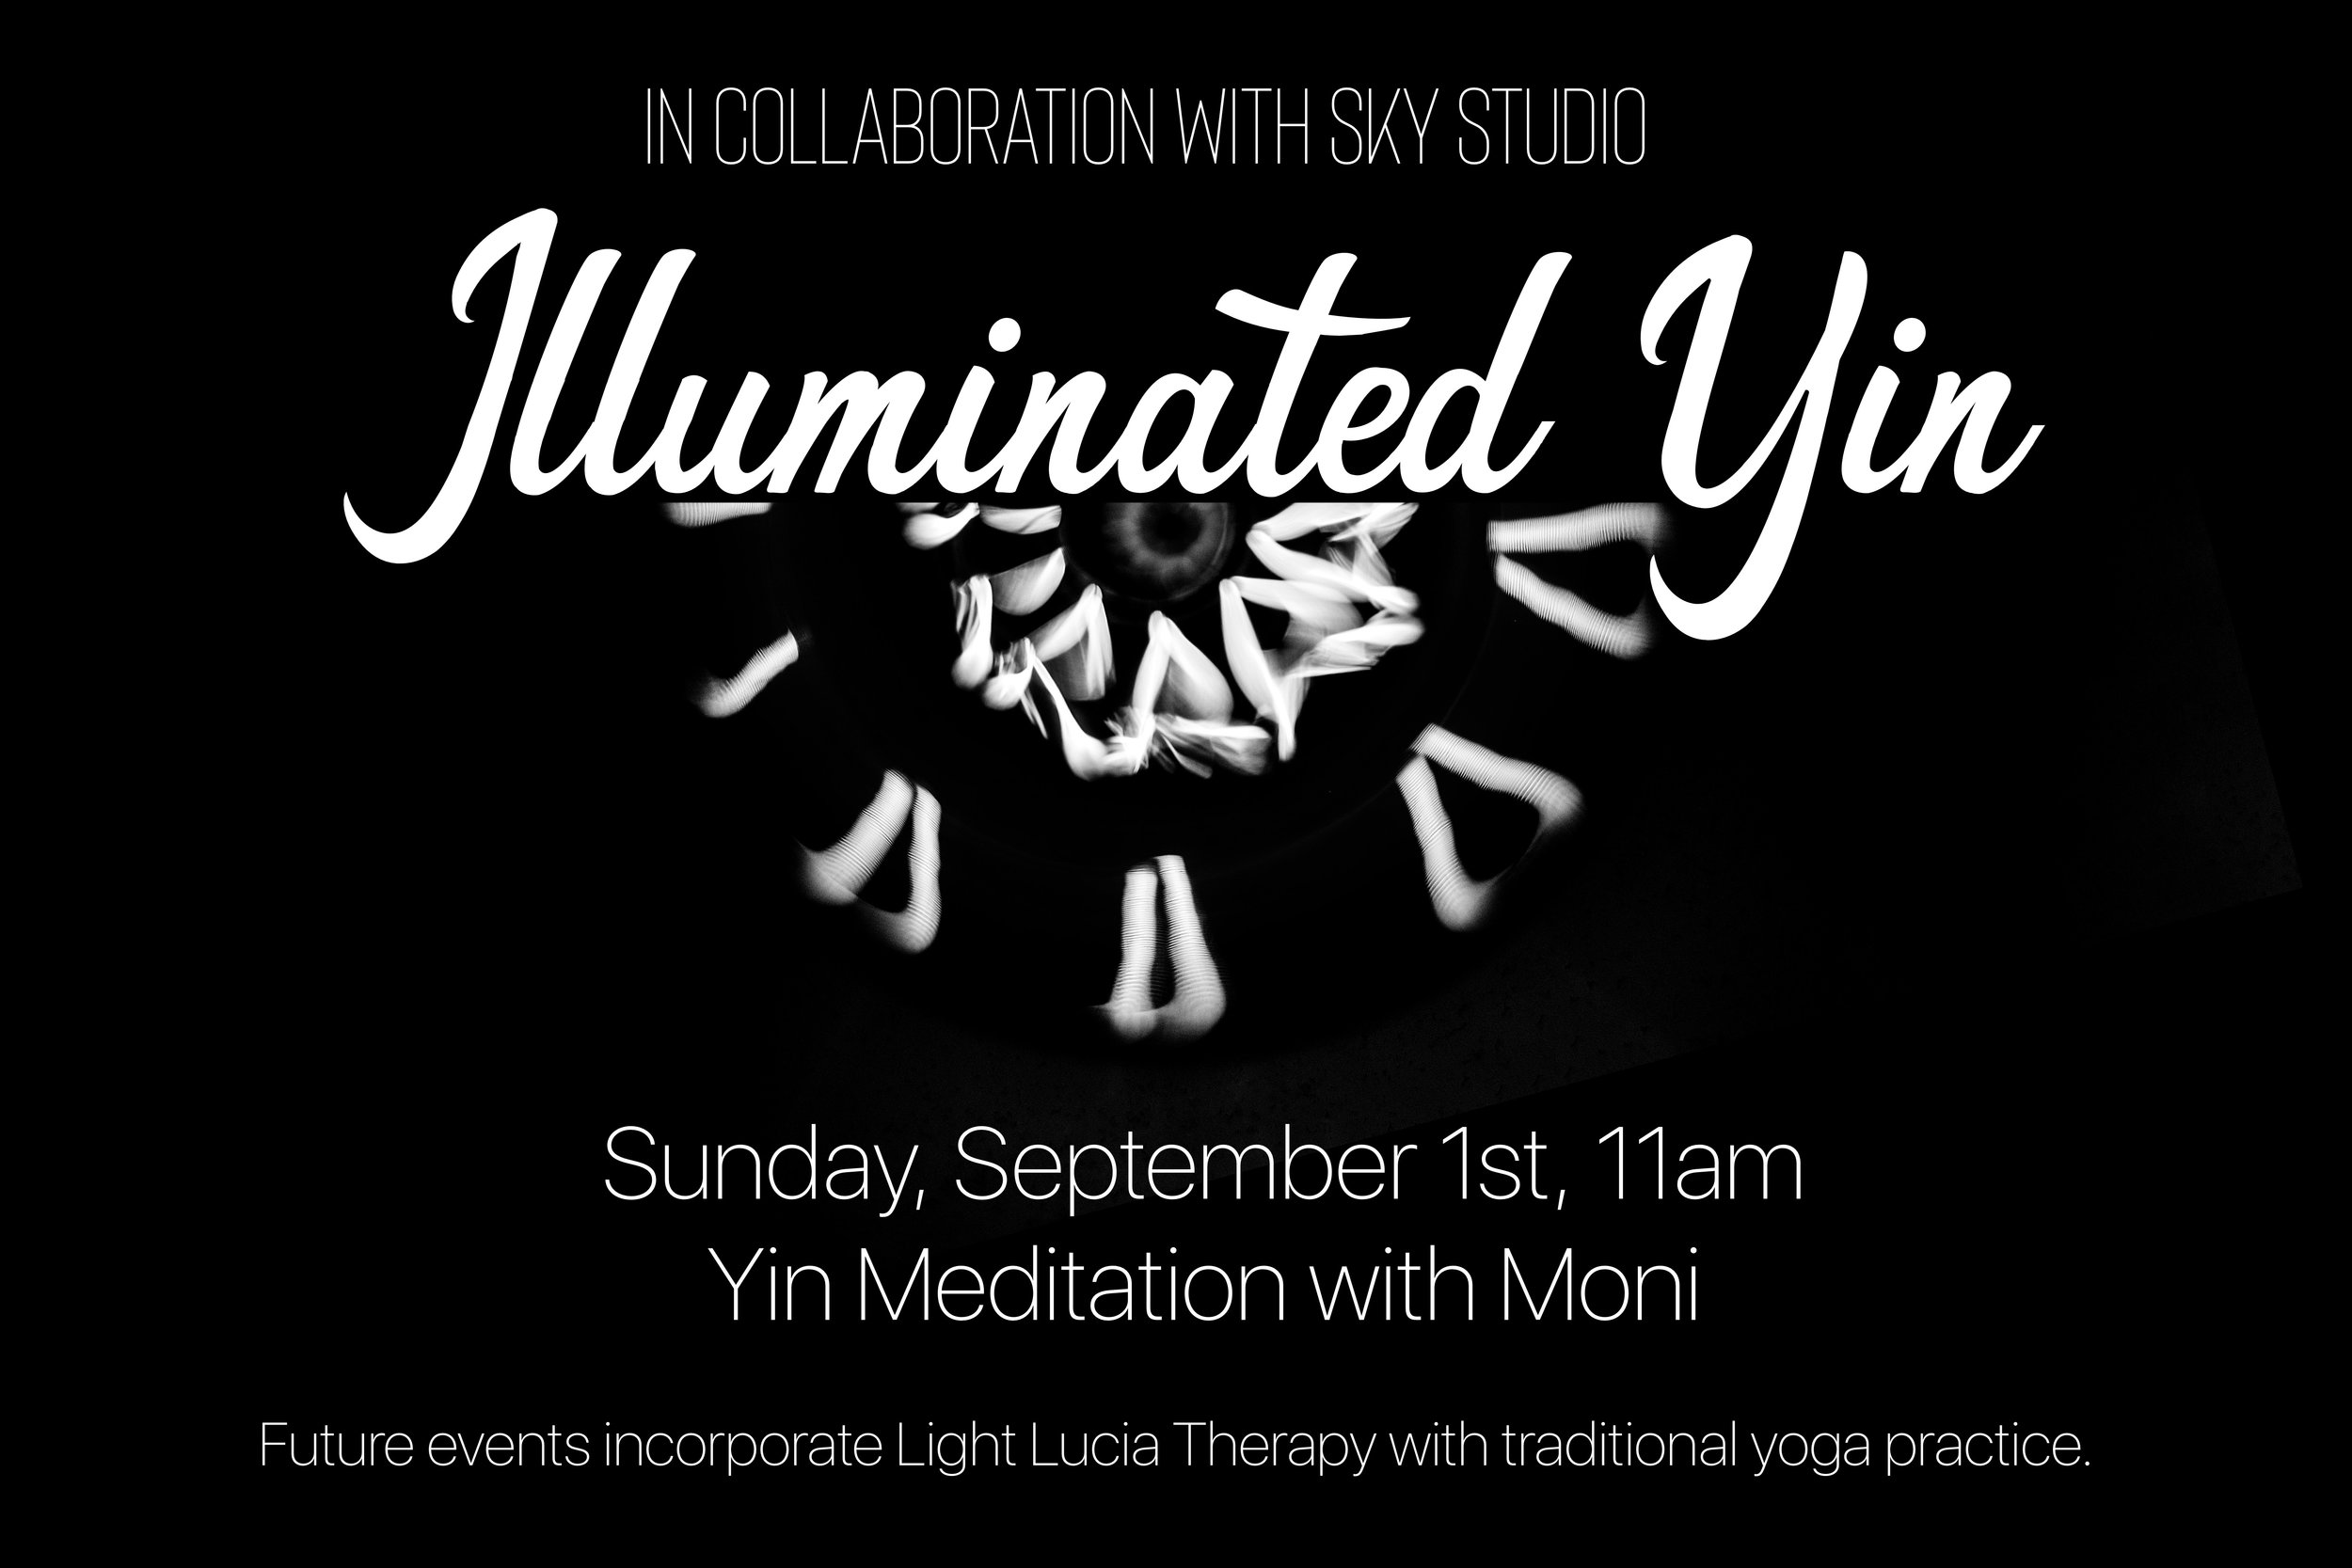 Collaboration with Sky Studio - Take this opportunity to come check out our blossoming yoga space in collaboration with sky studio & Ja pace.I will be leading a yin meditation absolutely free, confirmation required. Come RElax and bliss out.follow us on instagram to be informed of our future events including yoga with reiki healing, live music & light therapy savasana.Please email weareoneohana@gmail.com to register for this class. space is limited.